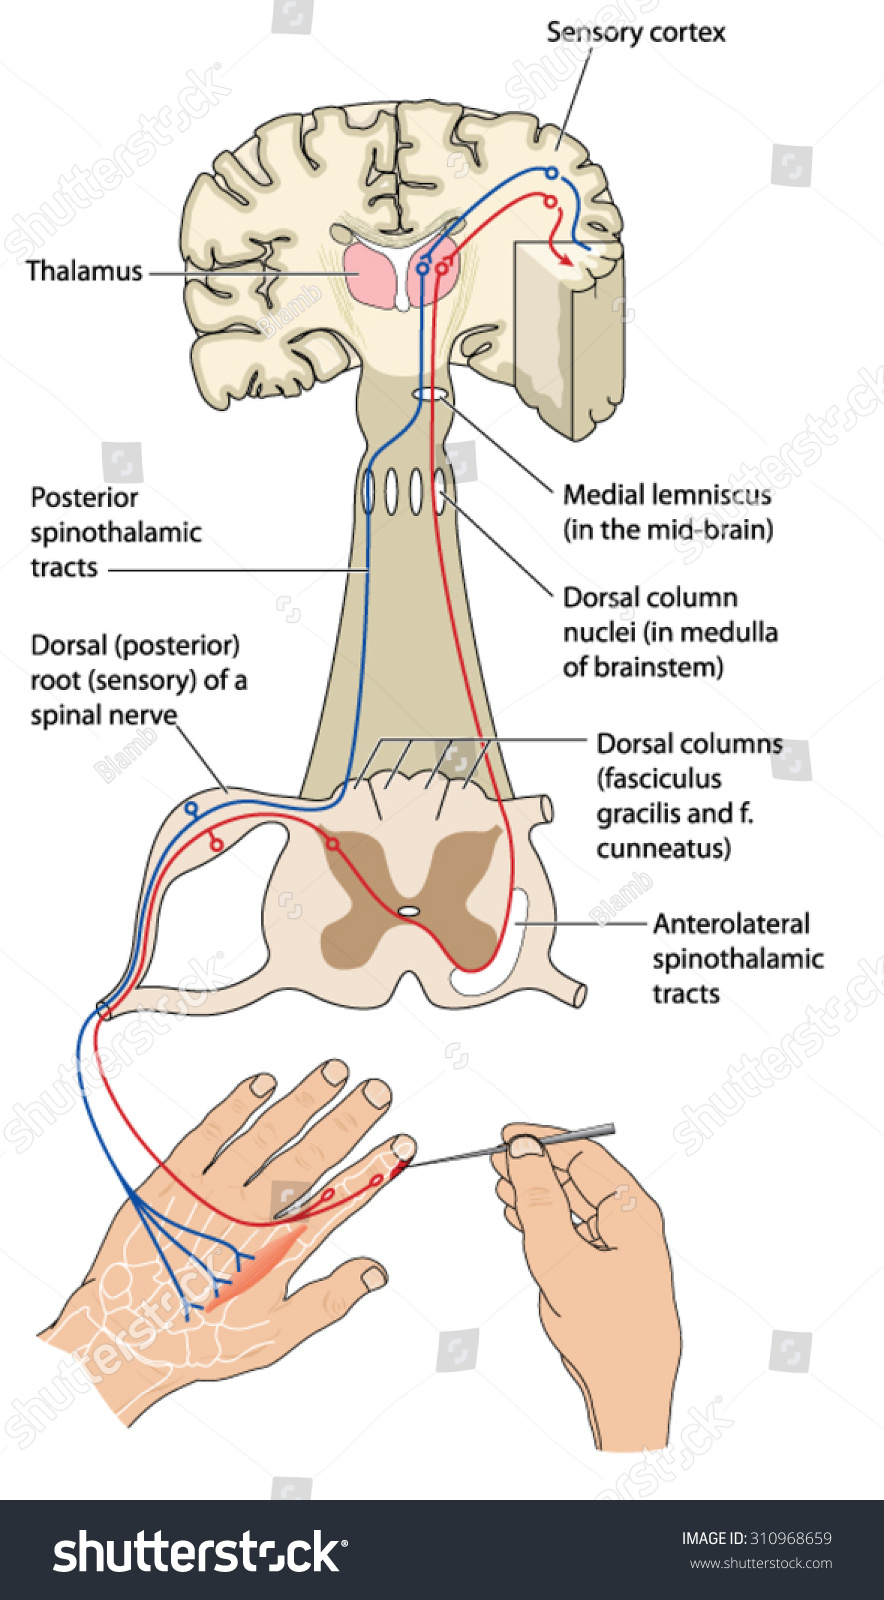 medium resolution of sensory and motor nerve pathways from a stimulus to the sensory cortex and back to muscle